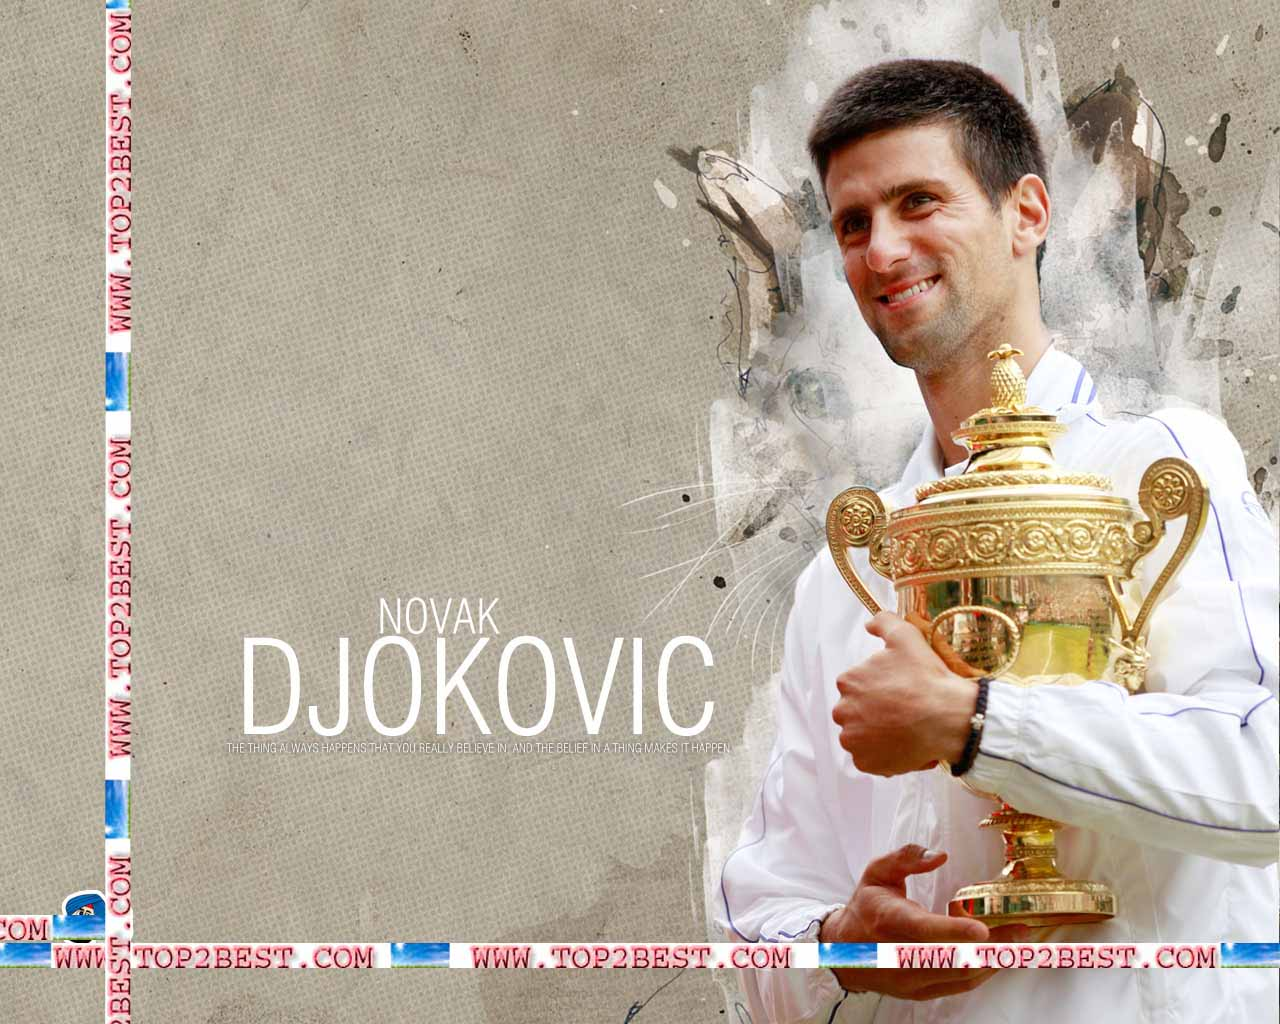 Novak Djokovic HD Wallpapers Download New Free